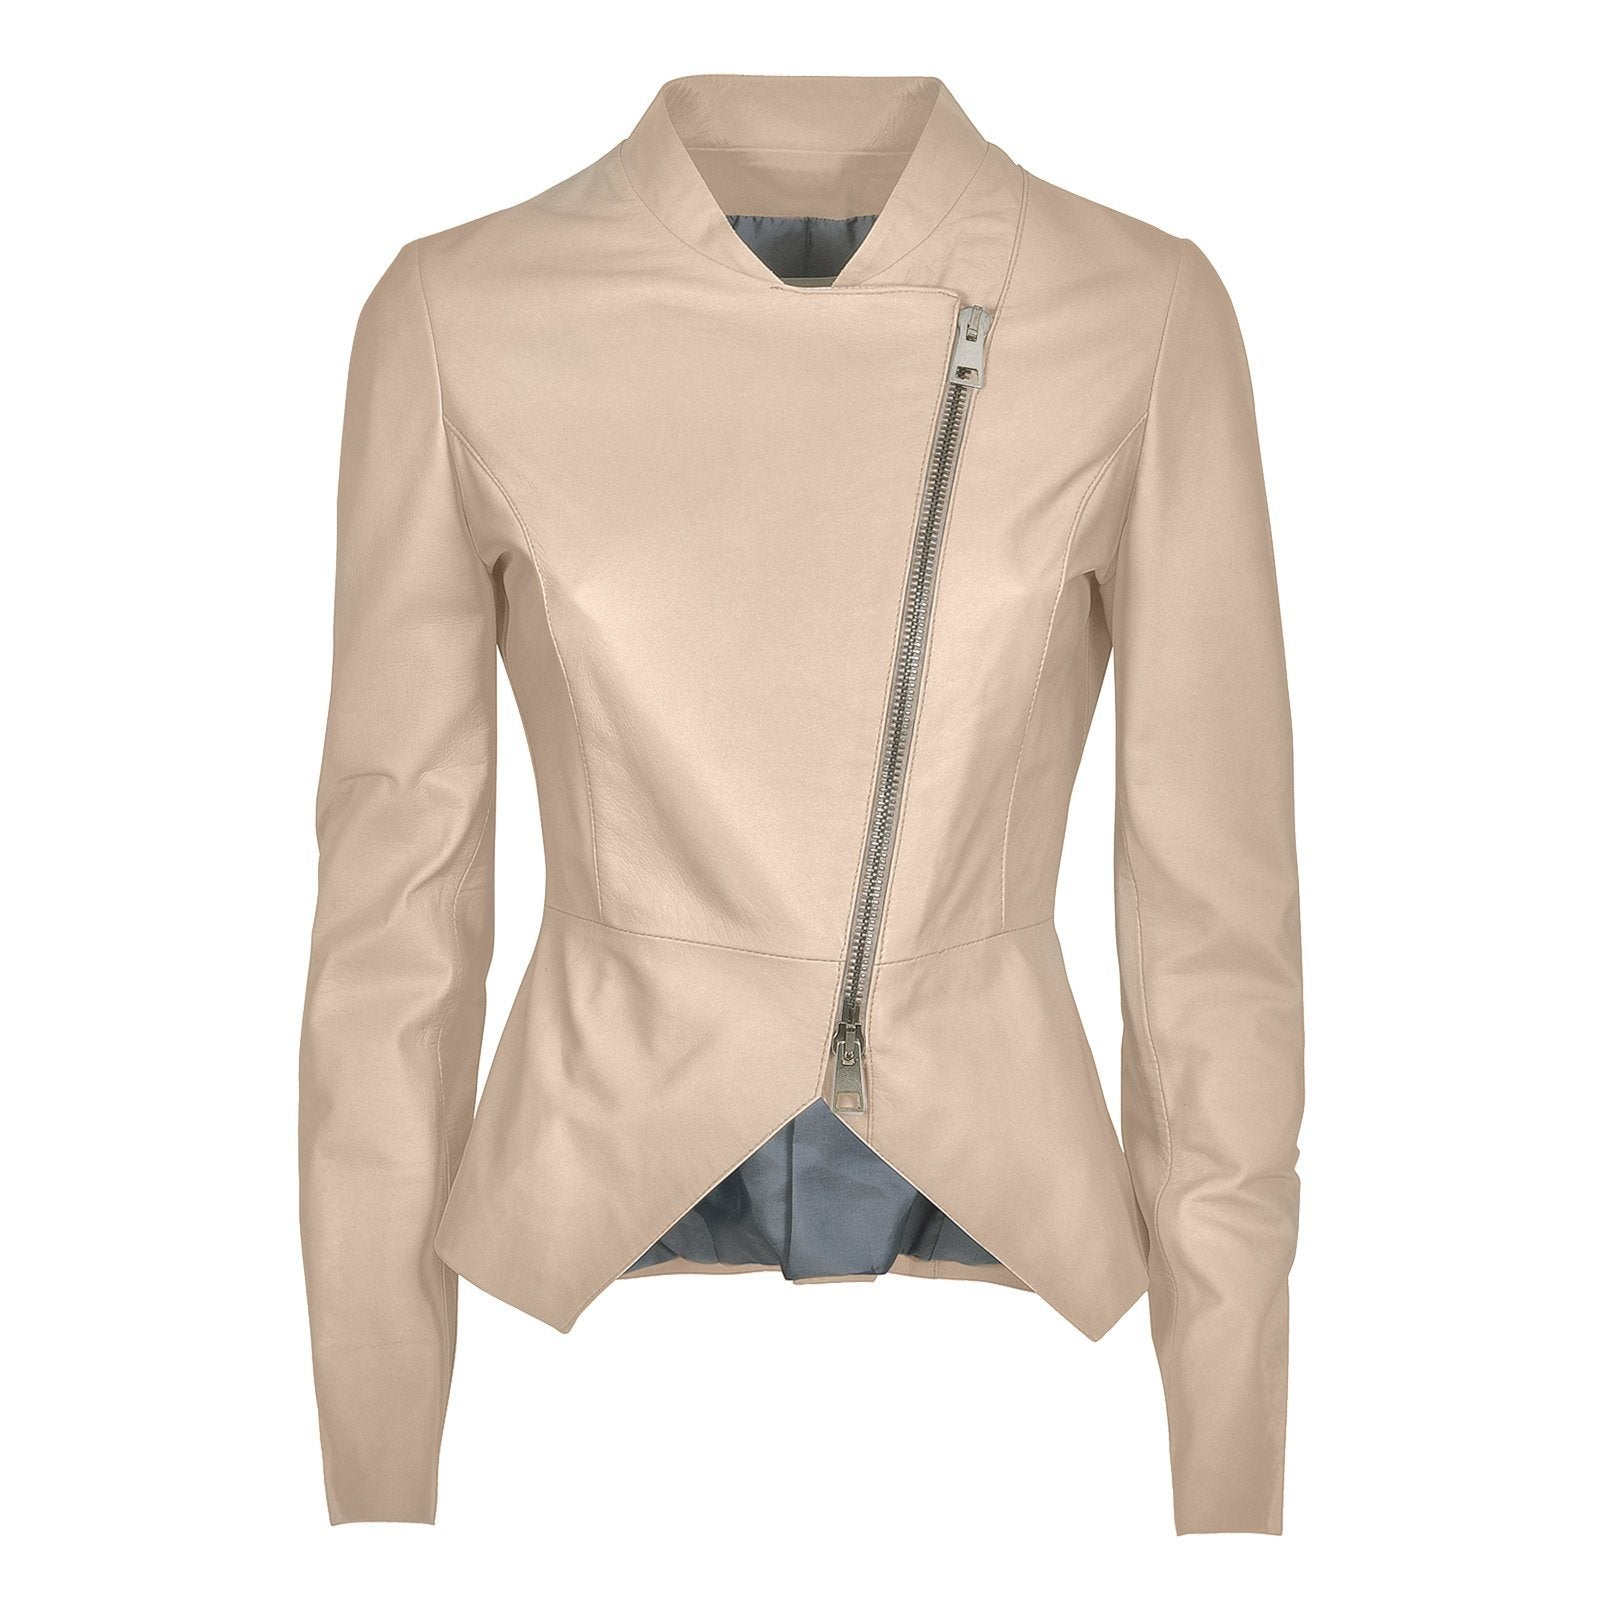 Custom Made Women's White Leather Jacket, Made in Italy - The